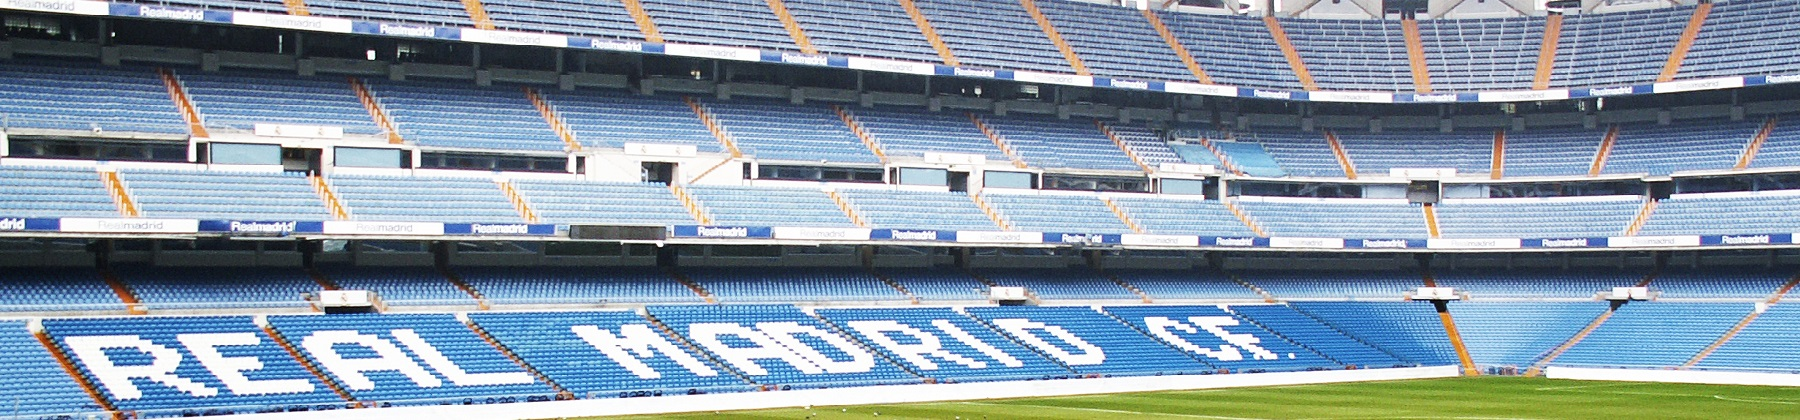 Pack Tour Bernabeu (adulto)